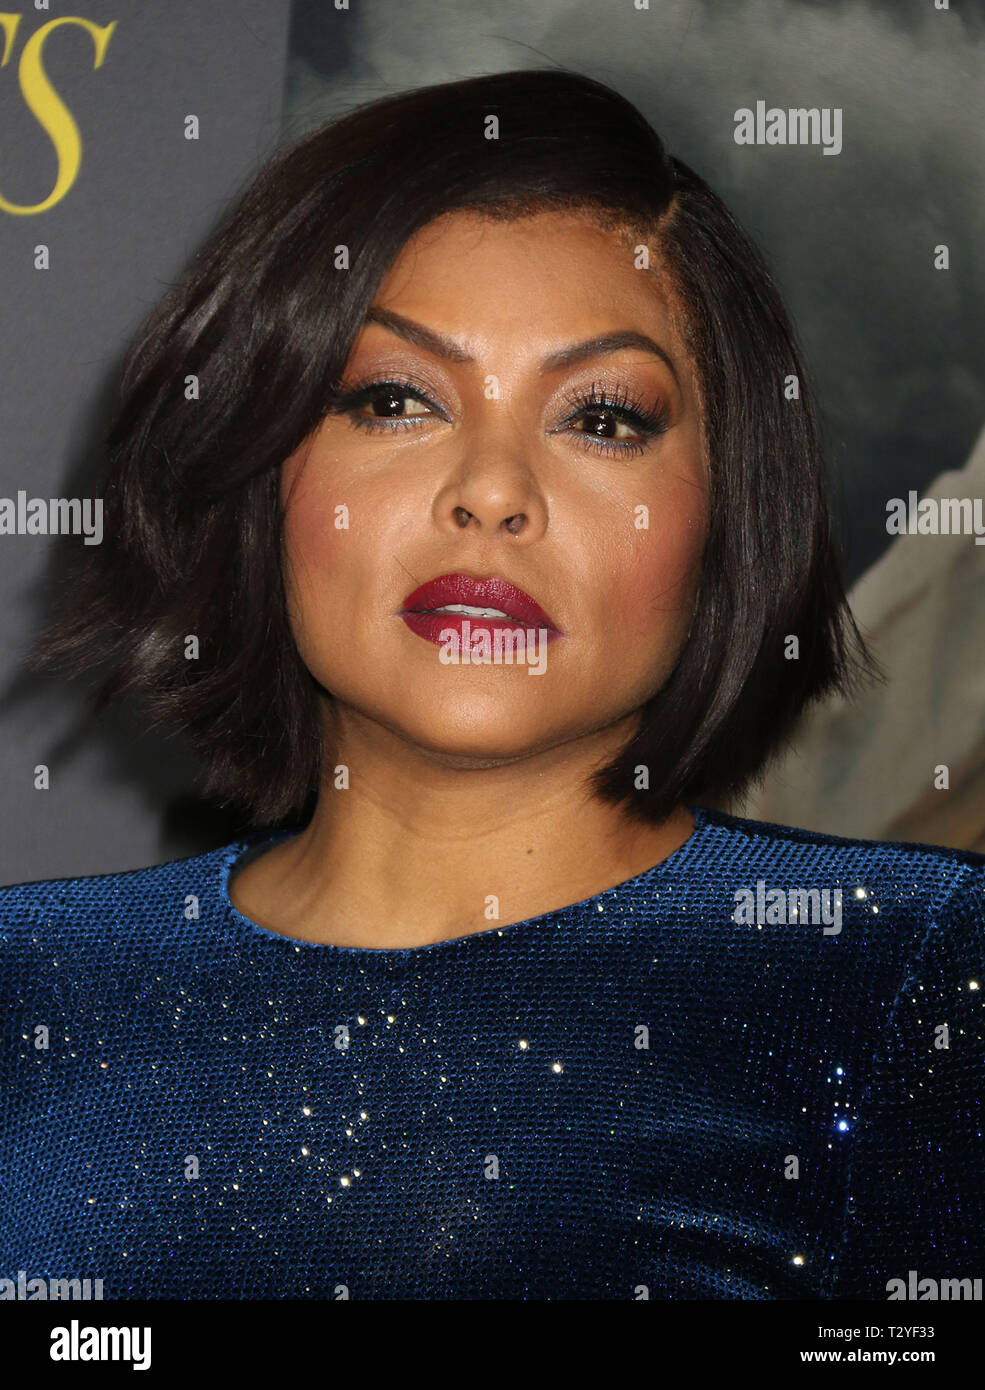 April 4, 2019 - New York City, New York, U.S. - Actress TARAJI P. HENSON attends the New York premiere of 'The Best of Enemies' held at AMC Loews Lincoln Square. (Credit Image: © Nancy Kaszerman/ZUMA Wire) Stock Photo